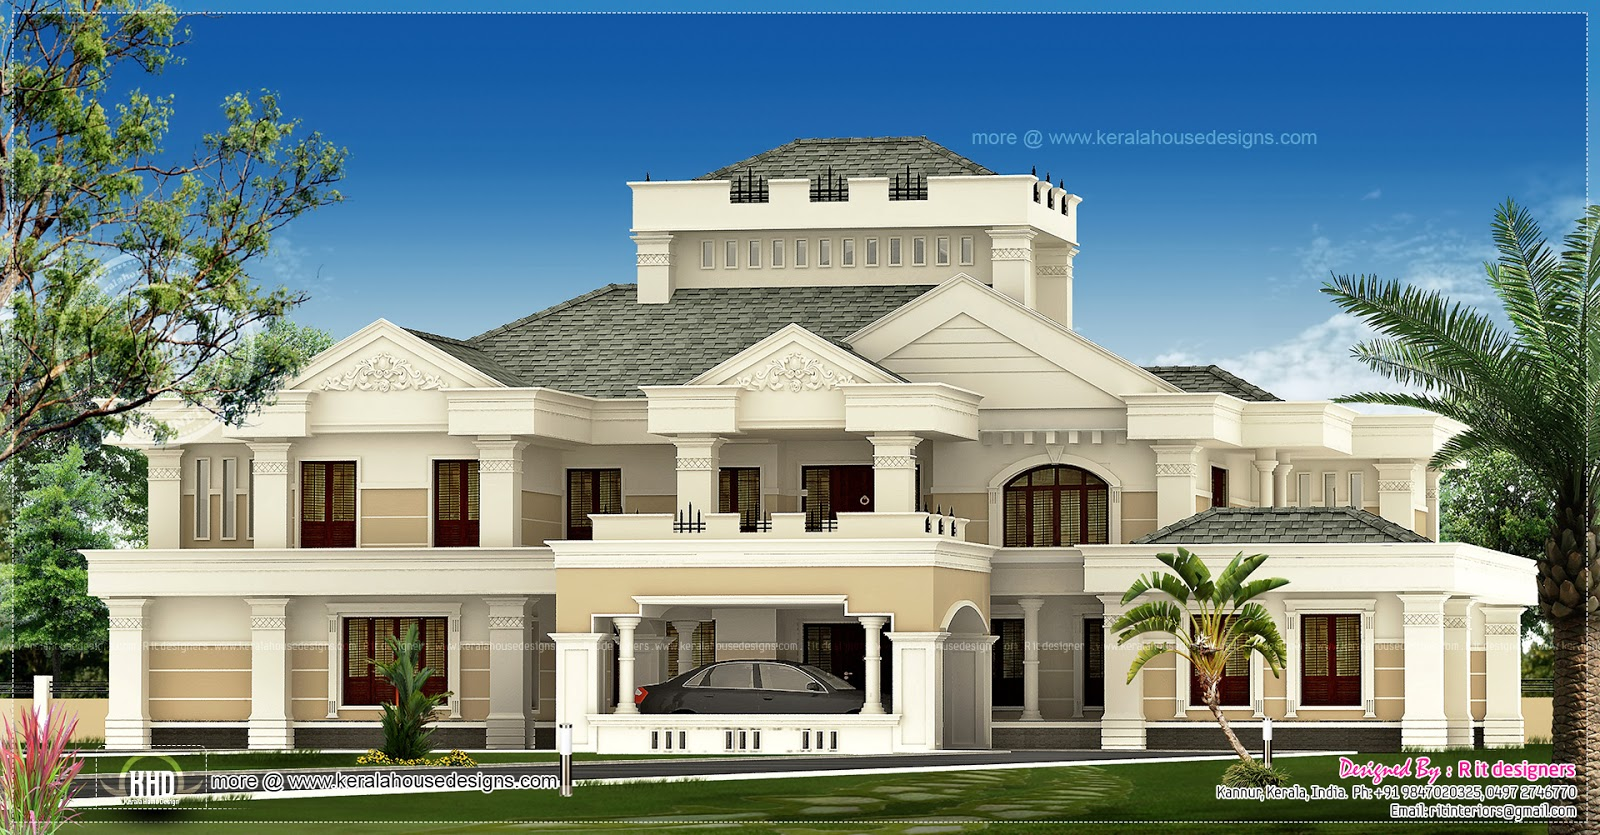 Super luxury kerala house exterior house design plans for New luxury home plans